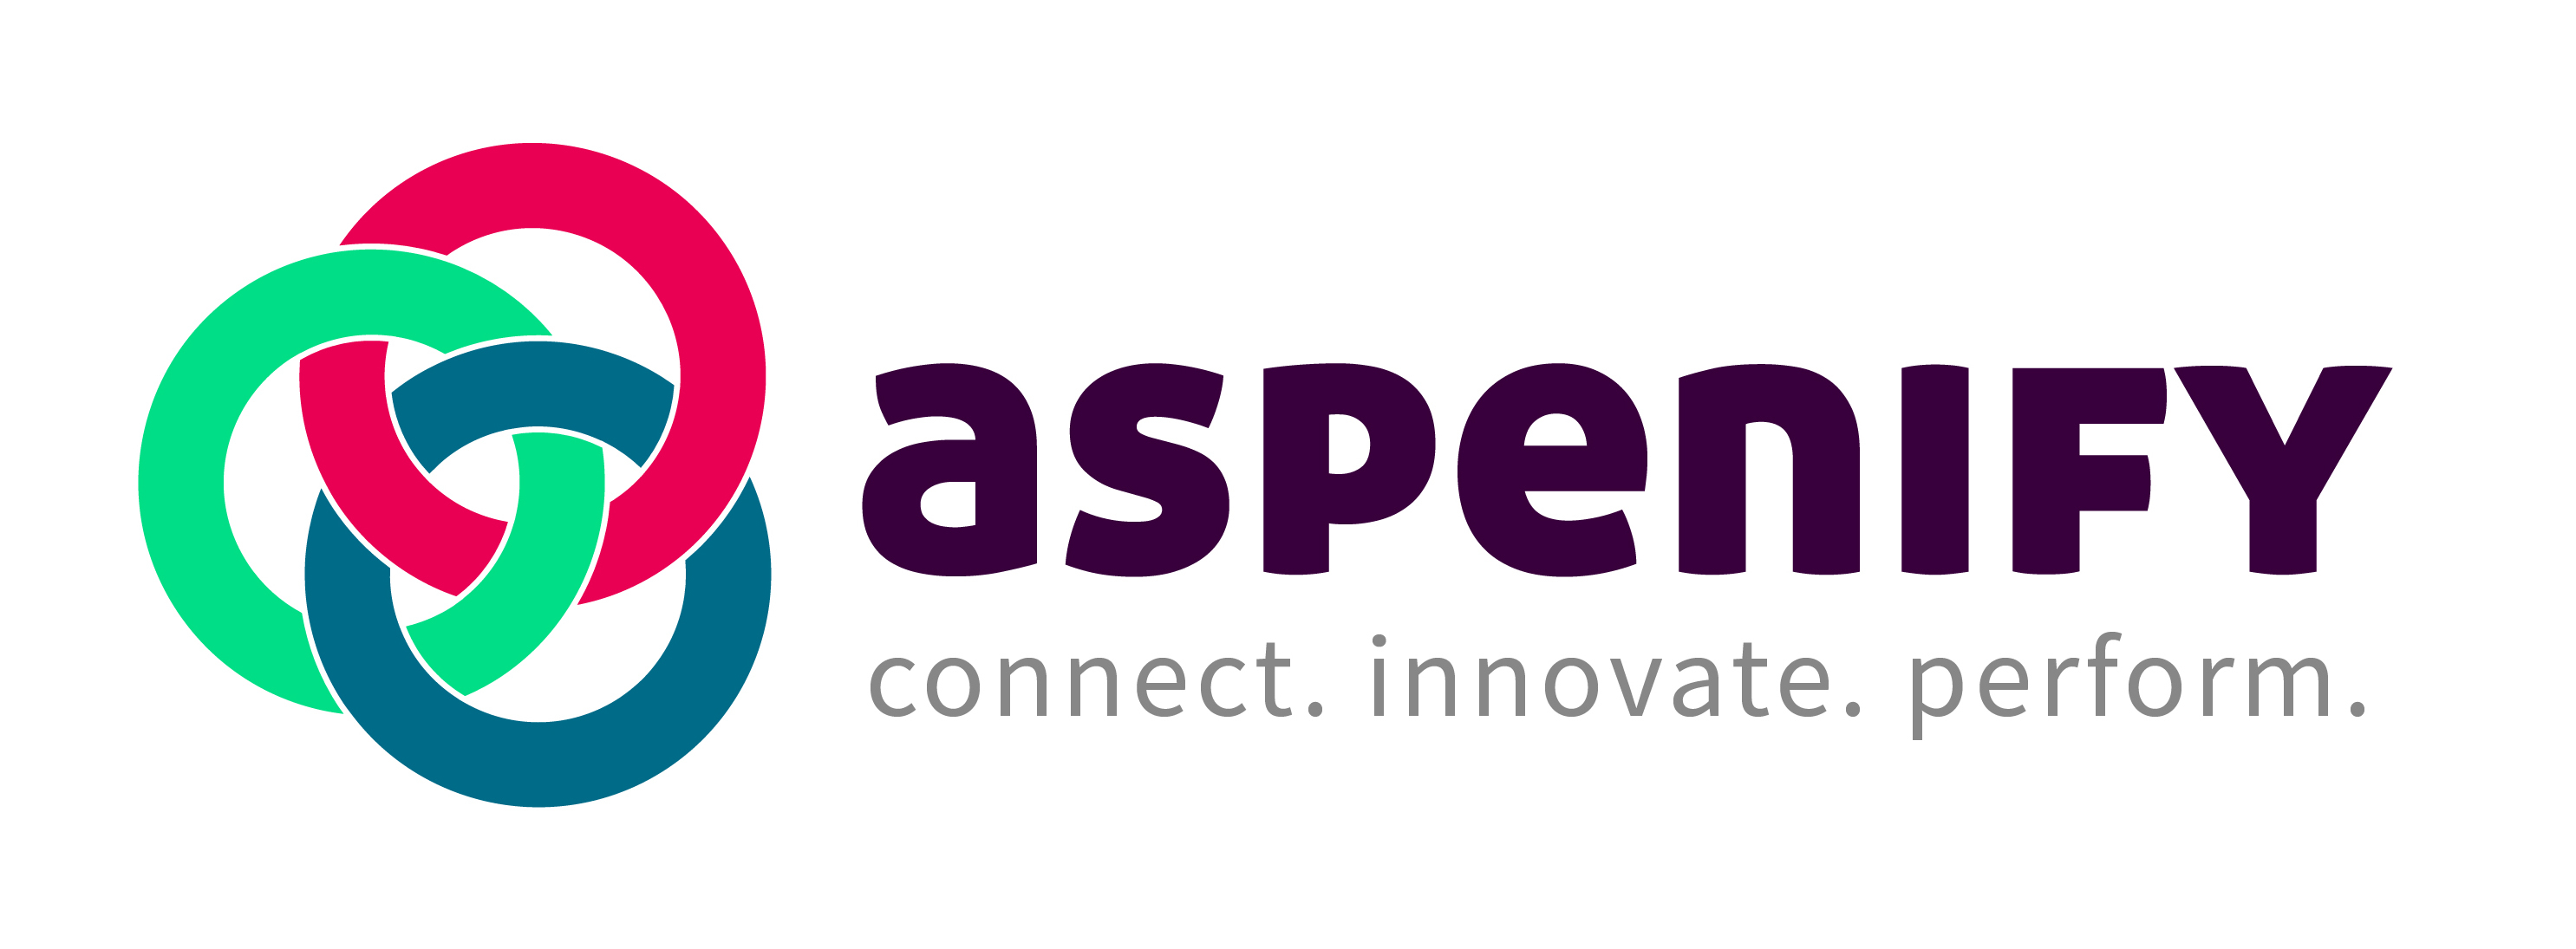 Aspenify Community Forums